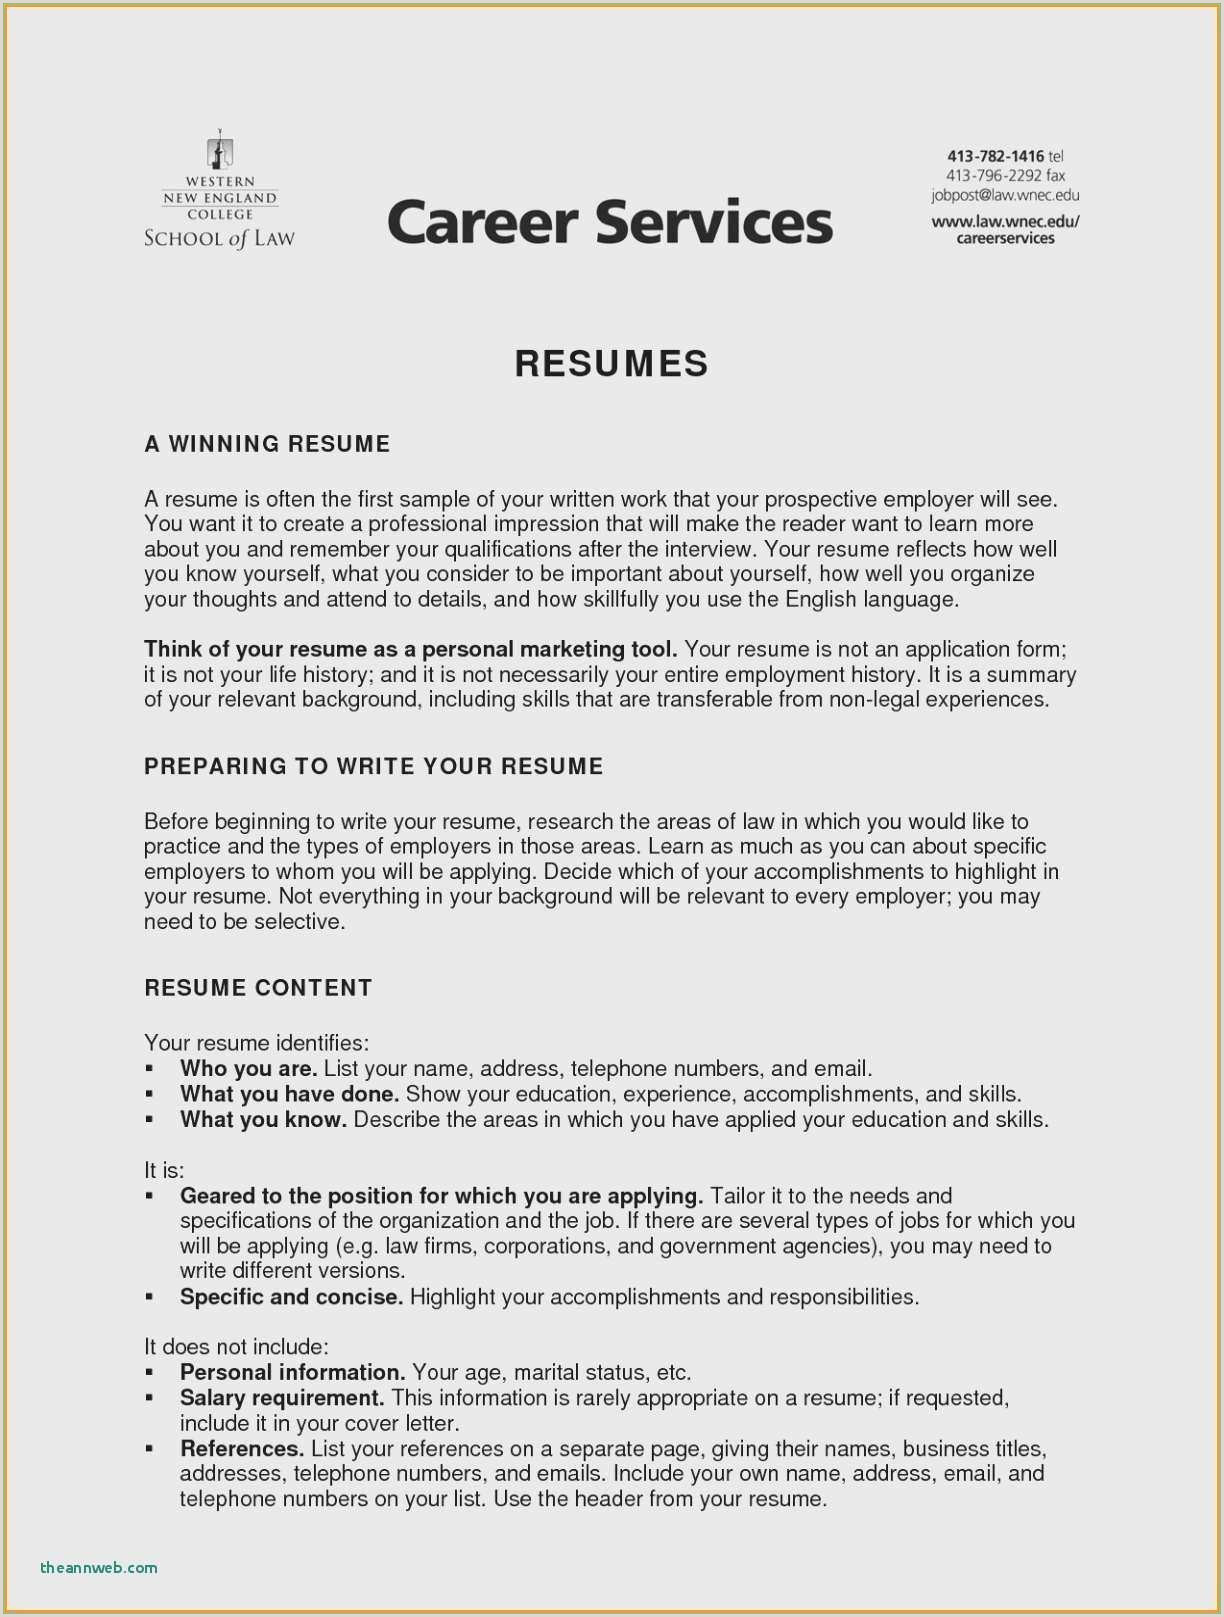 Ead Cover Letter Sample How to Head A Letter Imaxinaria